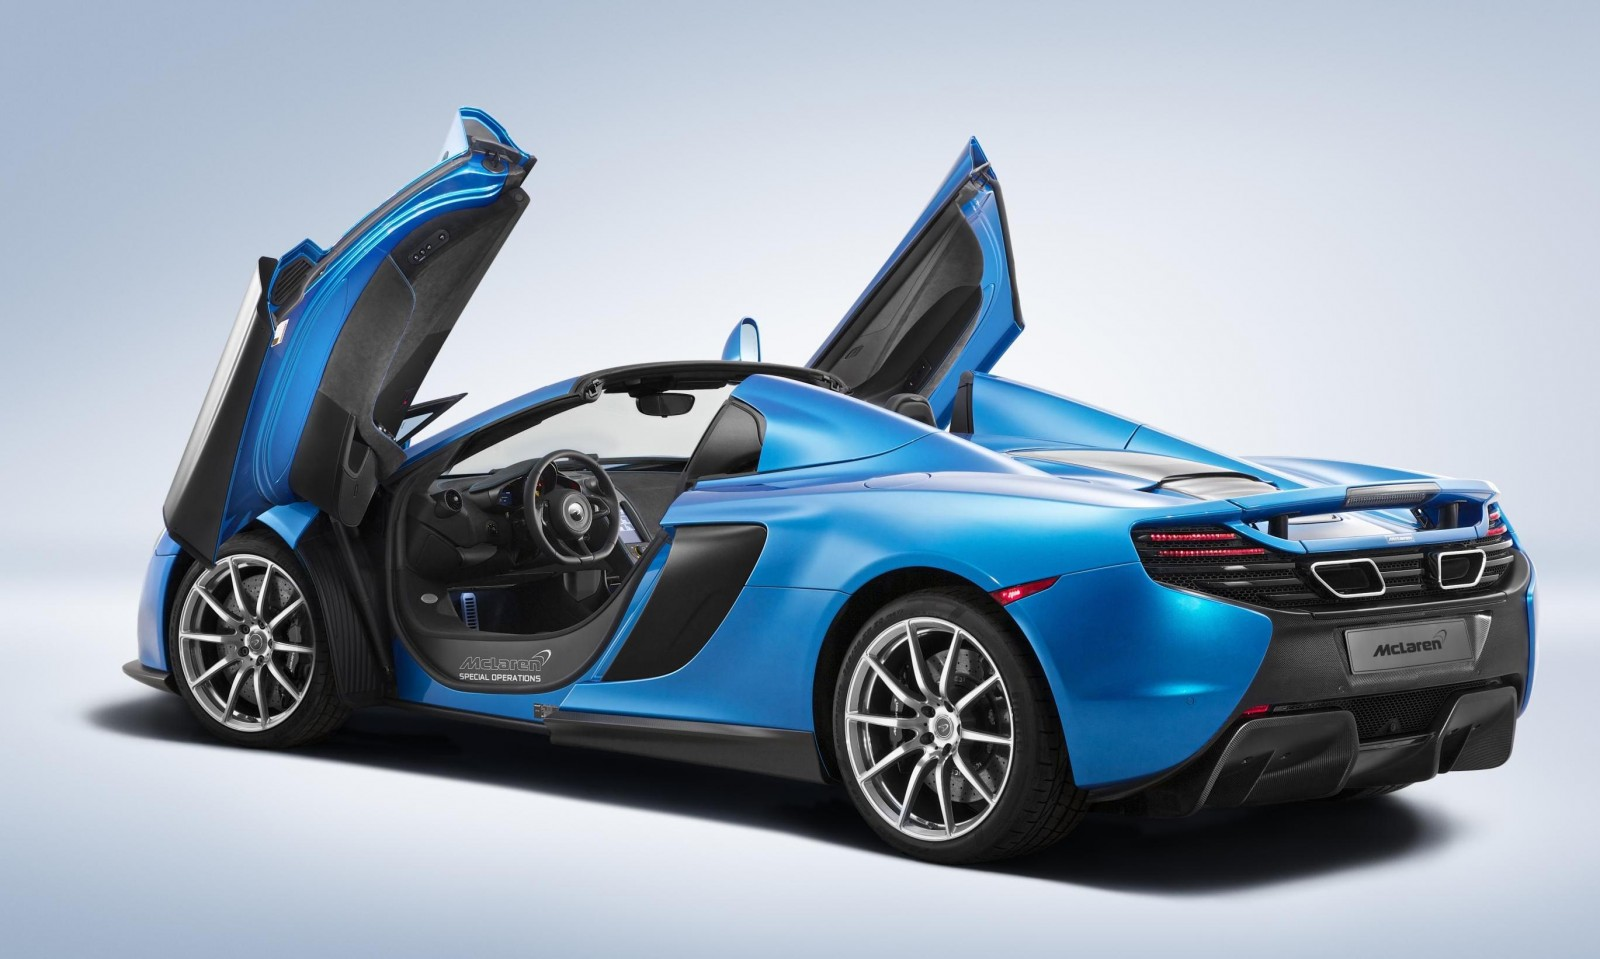 McLaren Special Operations Confirms Pebble Beach Debut of MSO 650S Spider and MSO P1 9